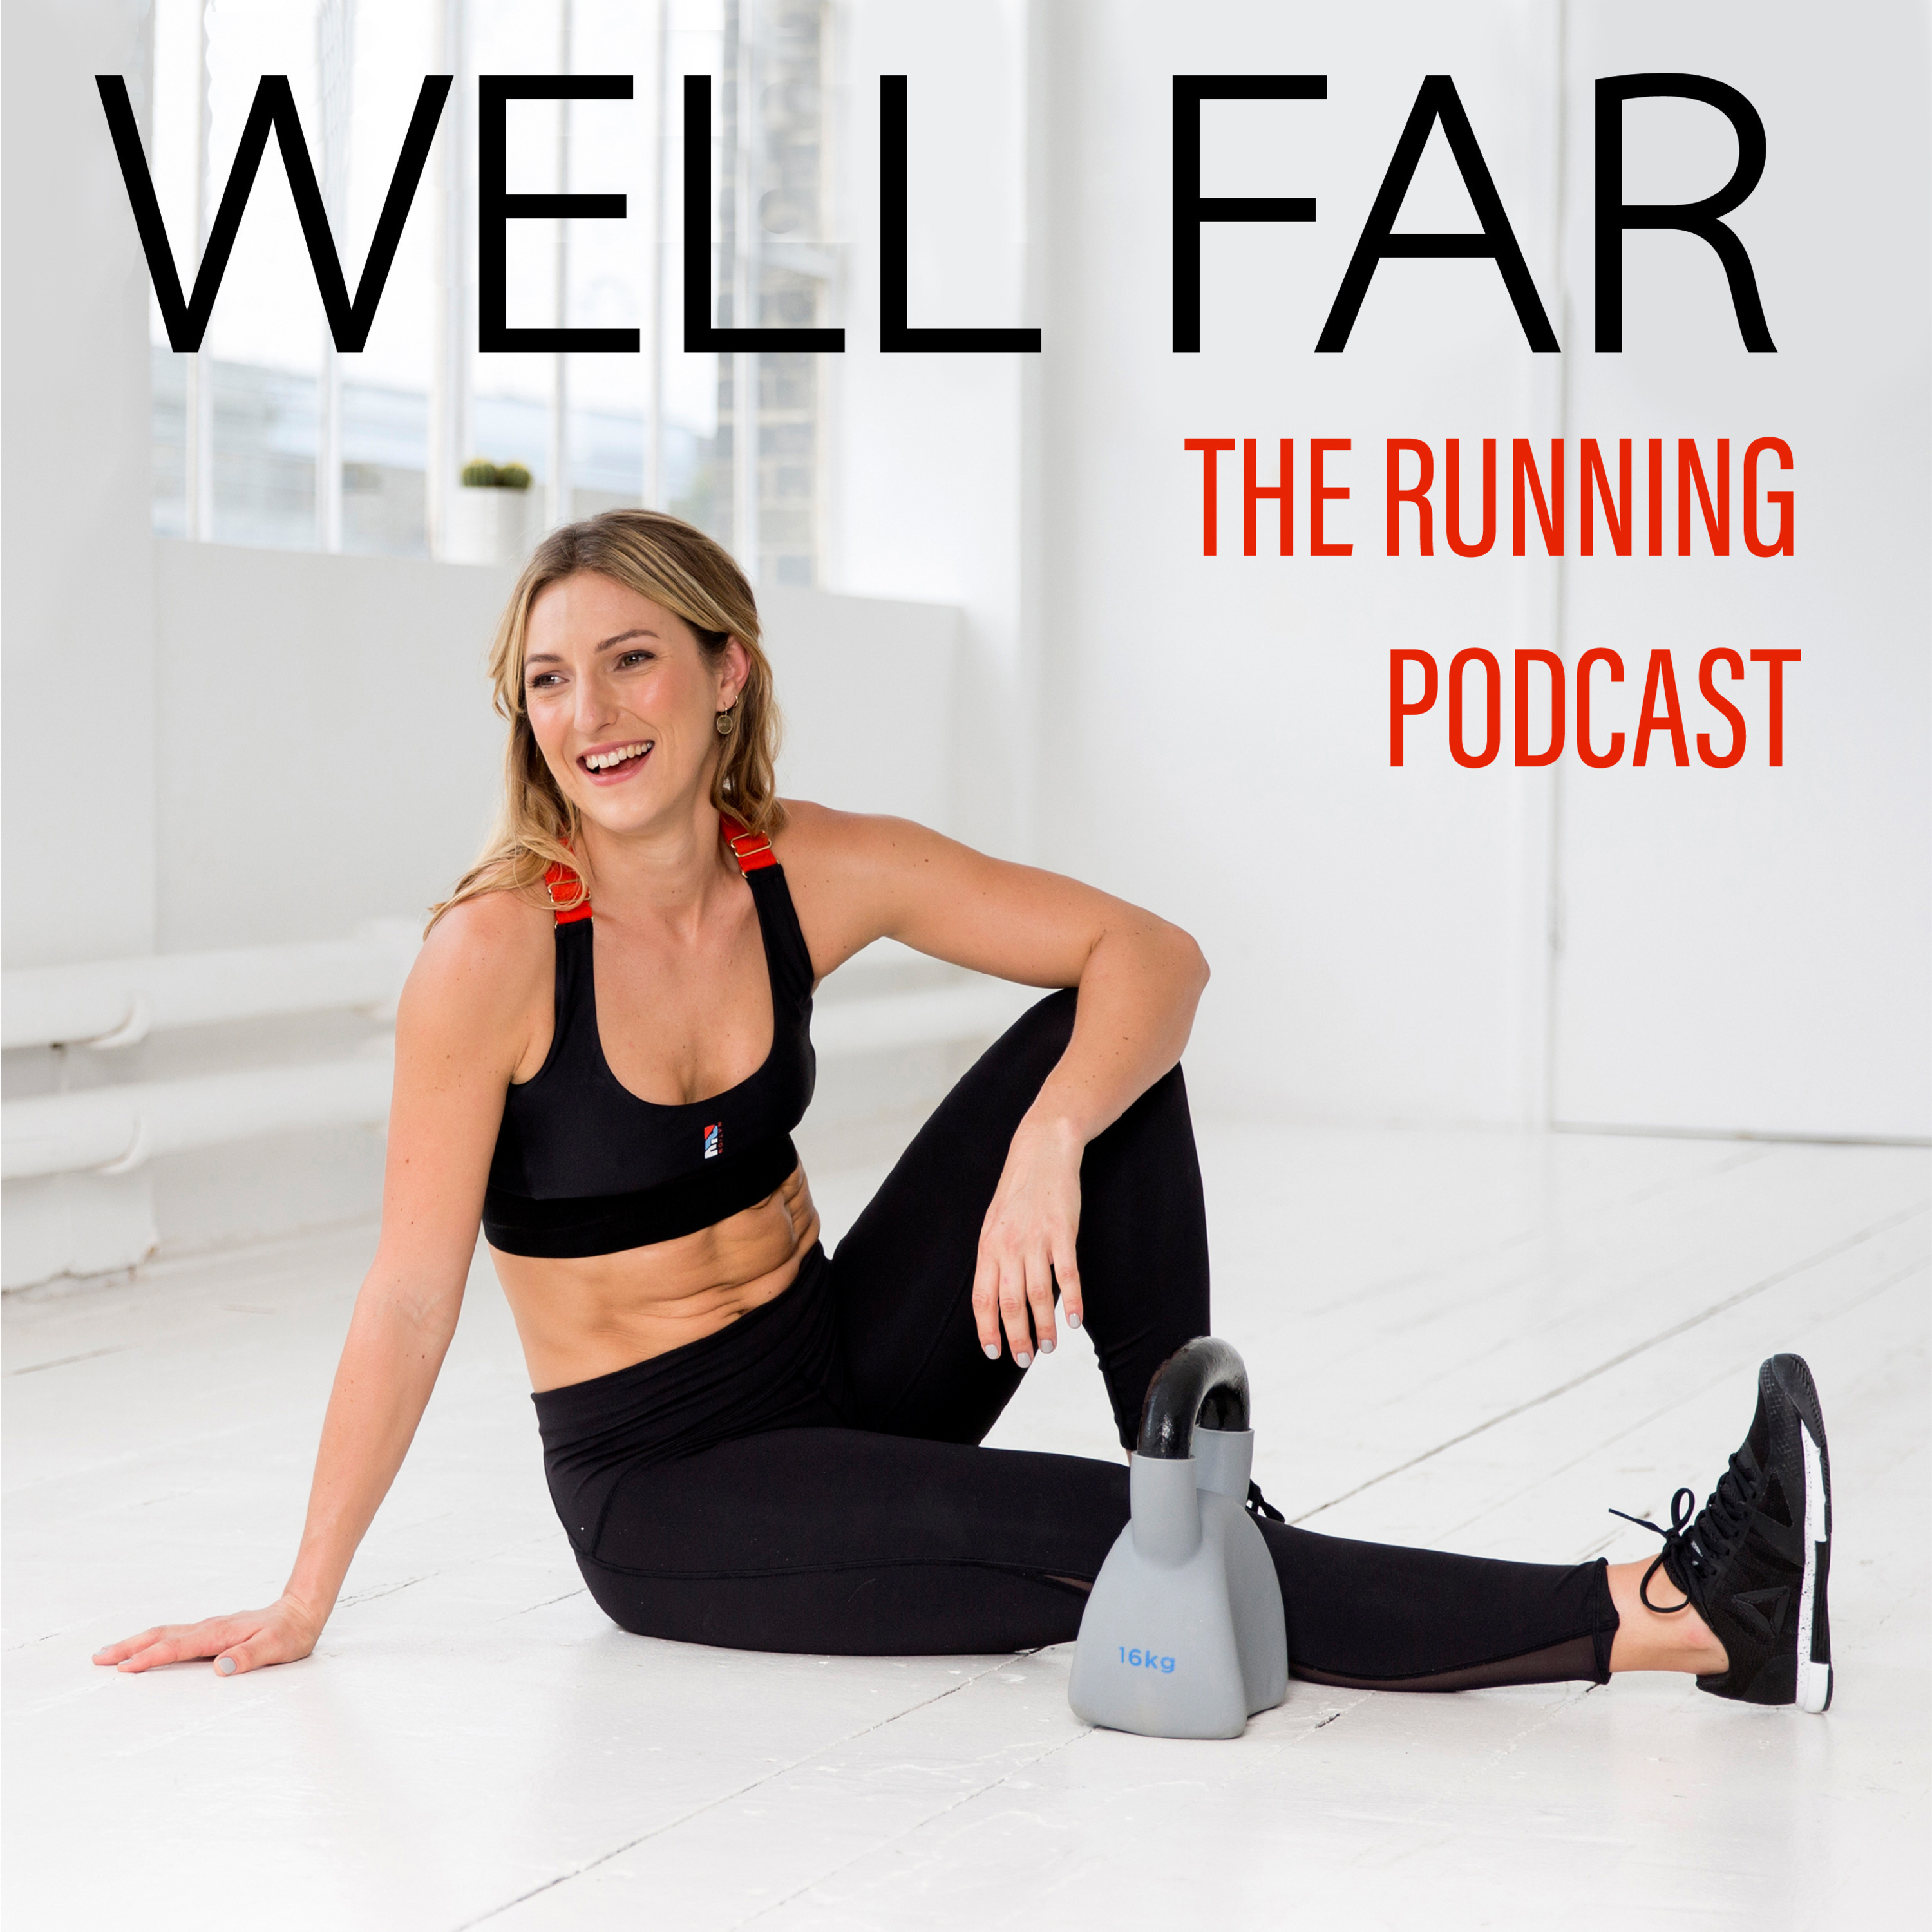 The marathon mindset: how yoga, meditation, and breathwork can improve performance with Michael Wong and Aimee Fuller